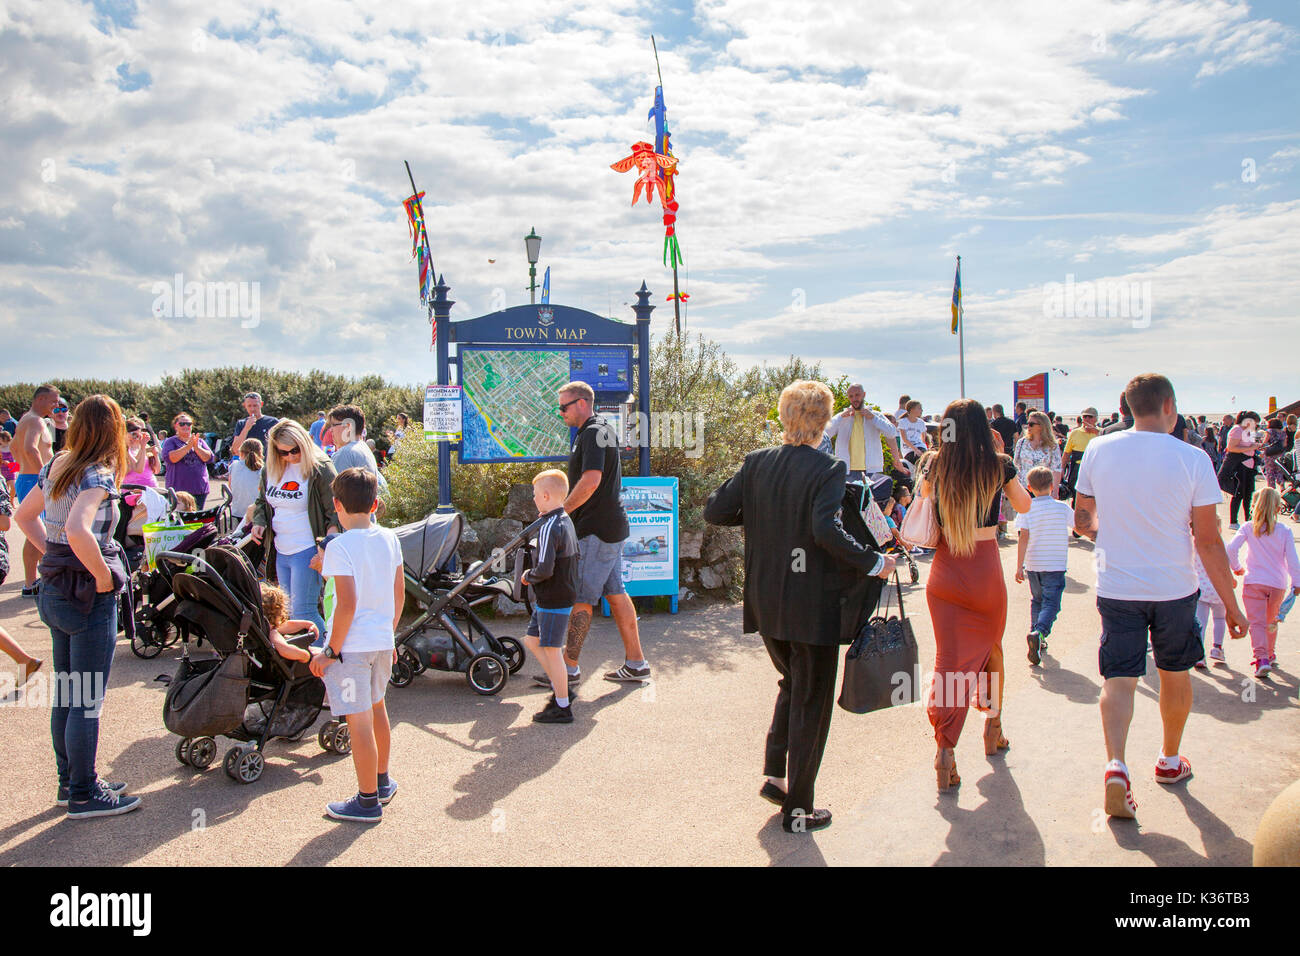 Lytham St Annes near Blackpool. UK Weather. 2nd September, 2017. High temperatures, sunny, hot, weather, summer, sun, nature, sunlight, sky, sand, landscape, sunshine brings thousands of holidaymakers to the resort to enjoy the summer sunshine on the sandy beach. Credit; MediaWorldImages/AlamyLiveNews. - Stock Image